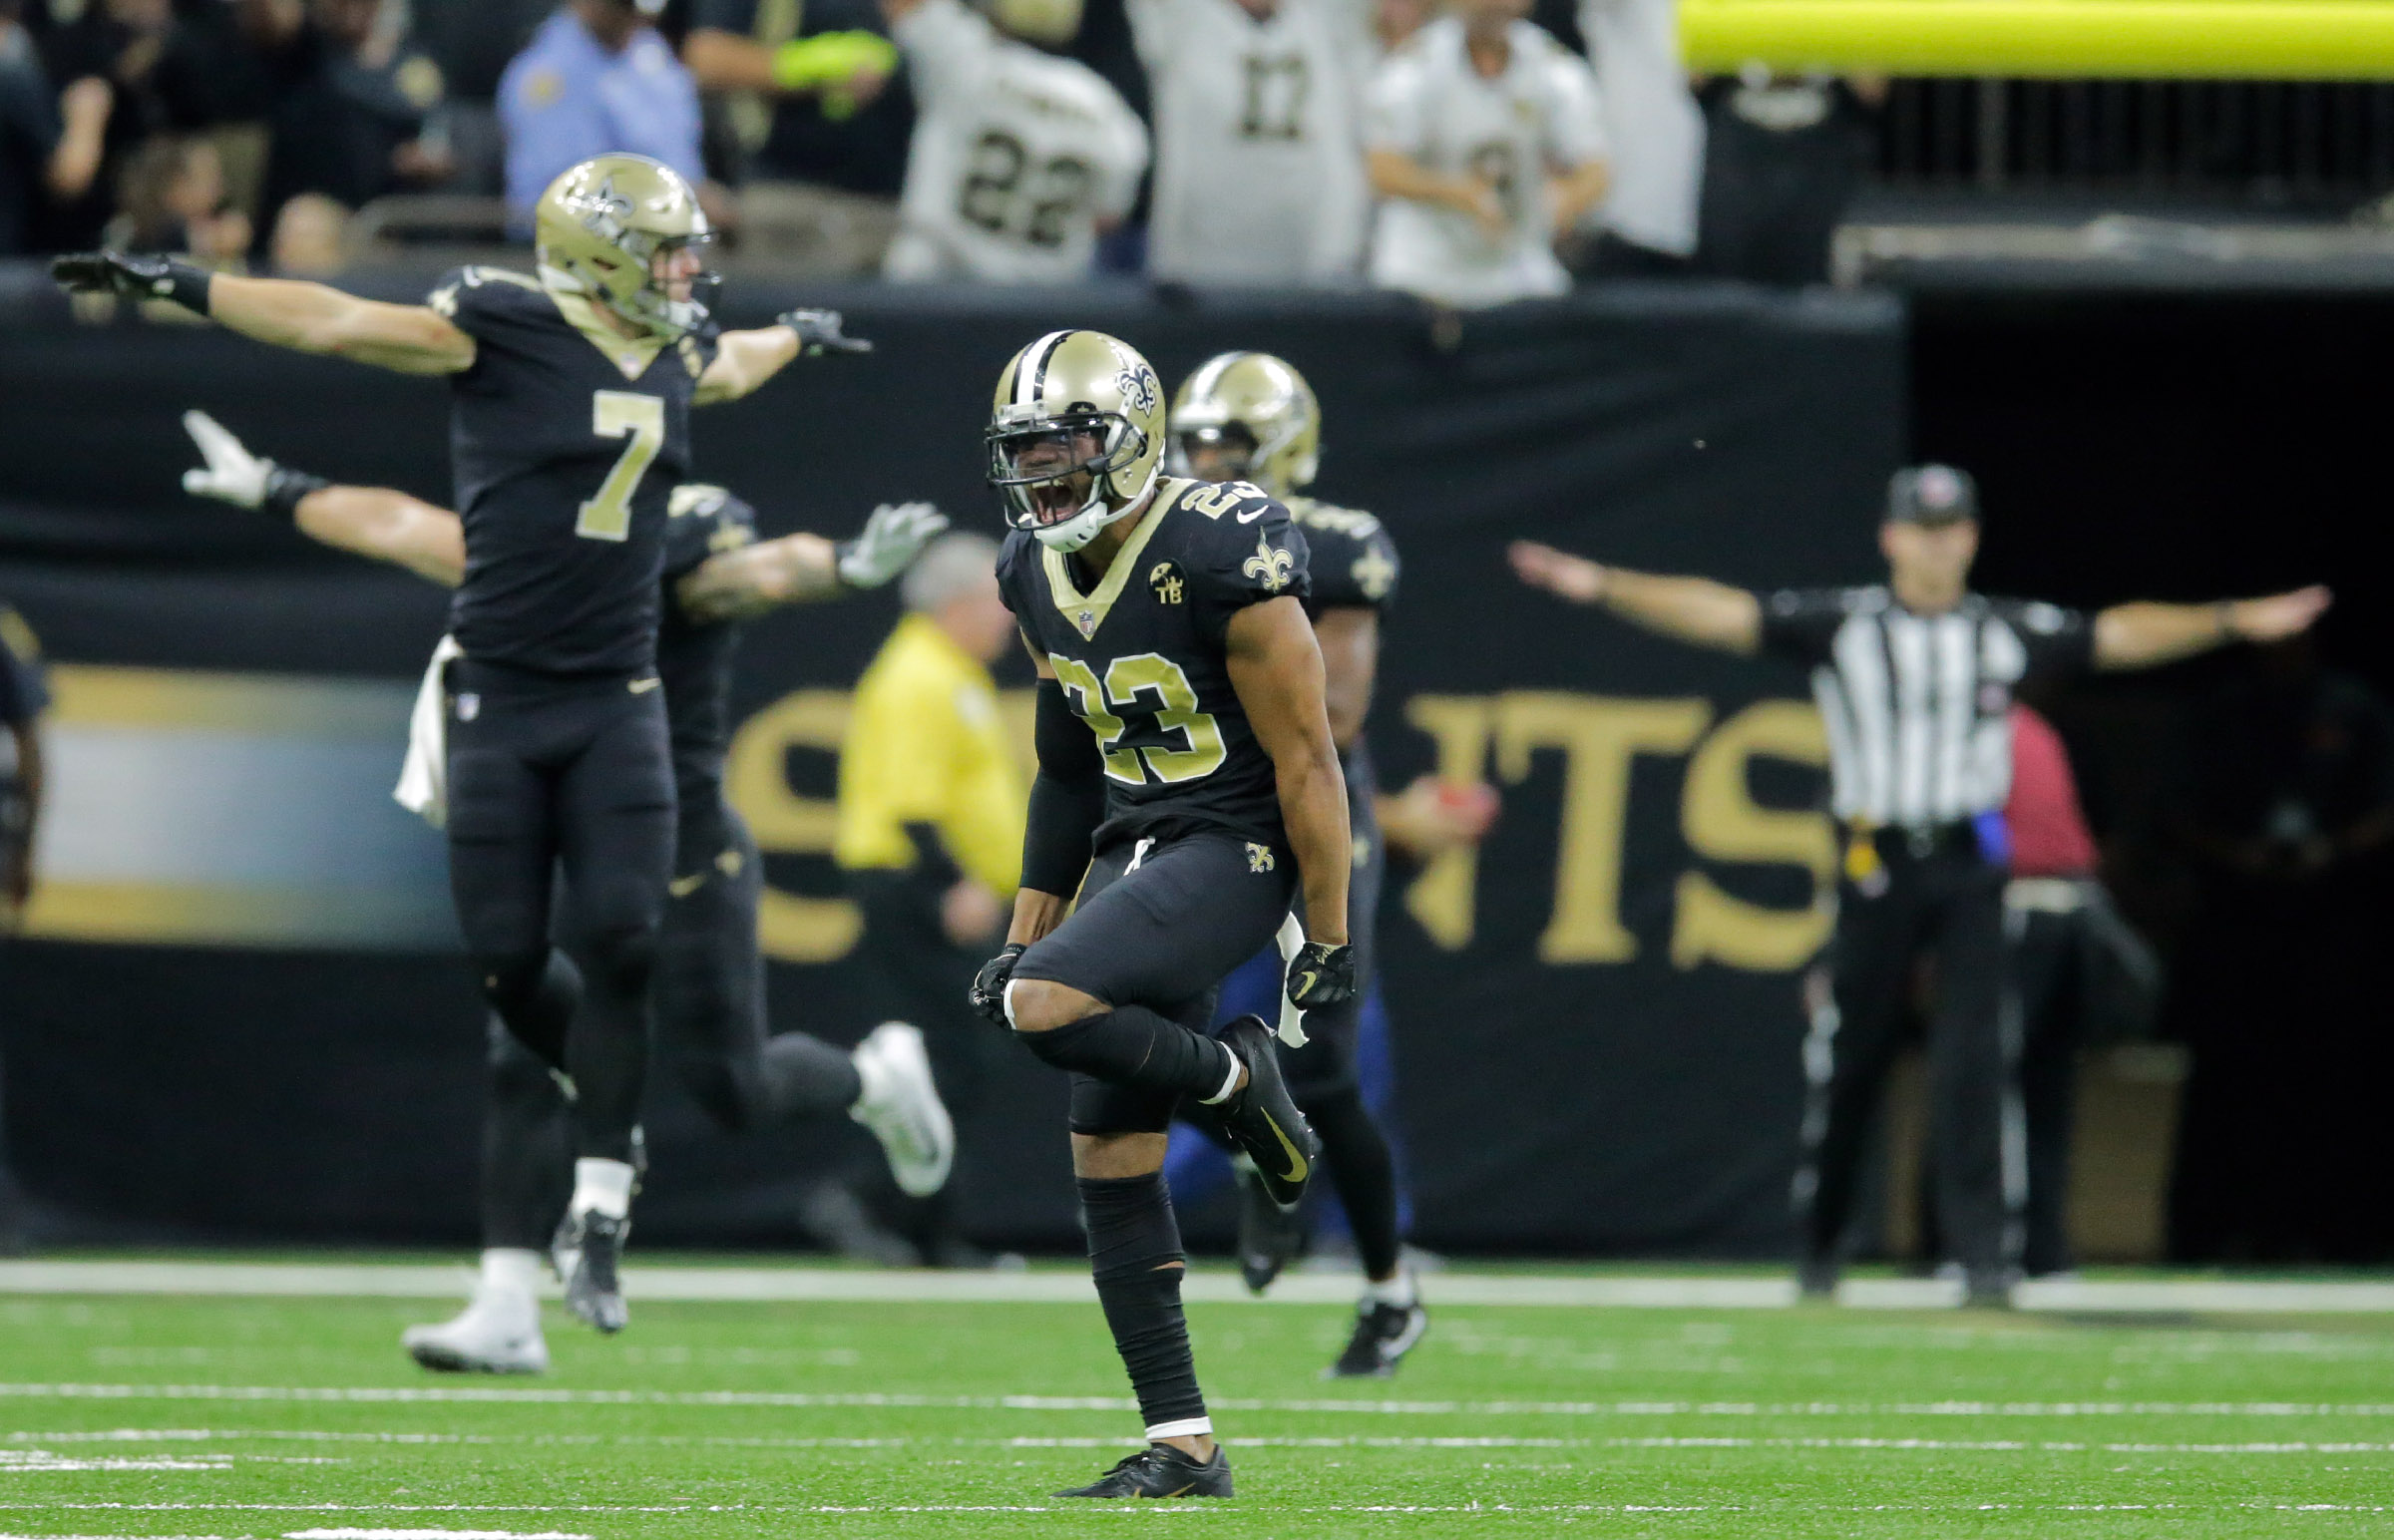 New Orleans Saints cornerback Marshon Lattimore (23) and other Saints react to Cleveland Browns kicker Zane Gonzalez (2) missing a game winning FG at the Mercedes-Benz Superdome in New Orleans, La. Sunday, Sept. 16, 2018. (Photo by David Grunfeld, NOLA.com | The Times-Picayune)